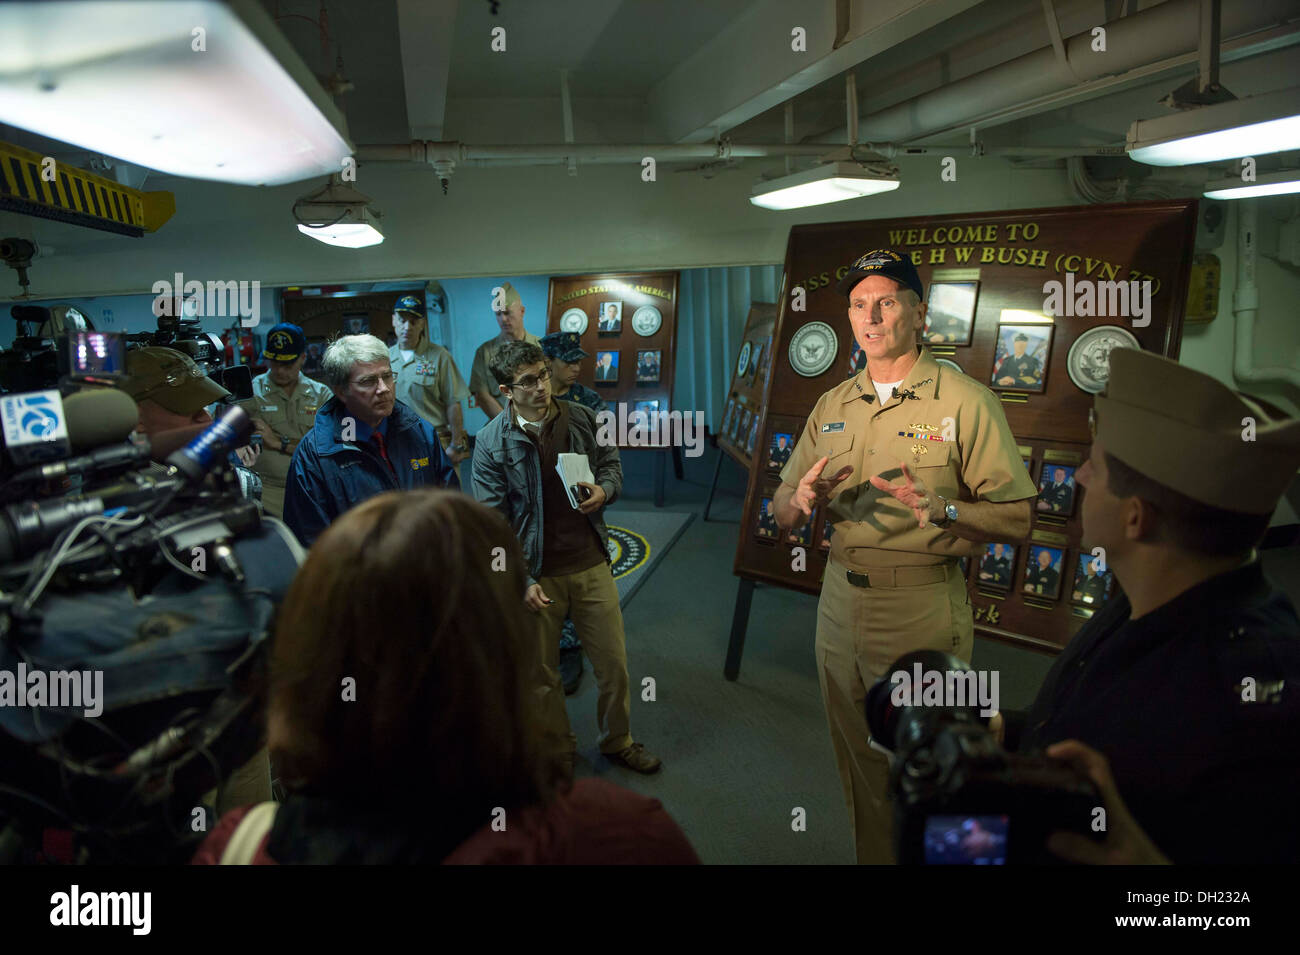 NORFOLK (Oct. 23, 2013) Chief of Naval Operations (CNO) Adm. Jonathan Greenert talks with local media after holding an all-hands call aboard the aircraft carrier USS George H.W. Bush (CVN 77) with Master Chief Petty Officer of the Navy (MCPON) Mike Steven - Stock Image